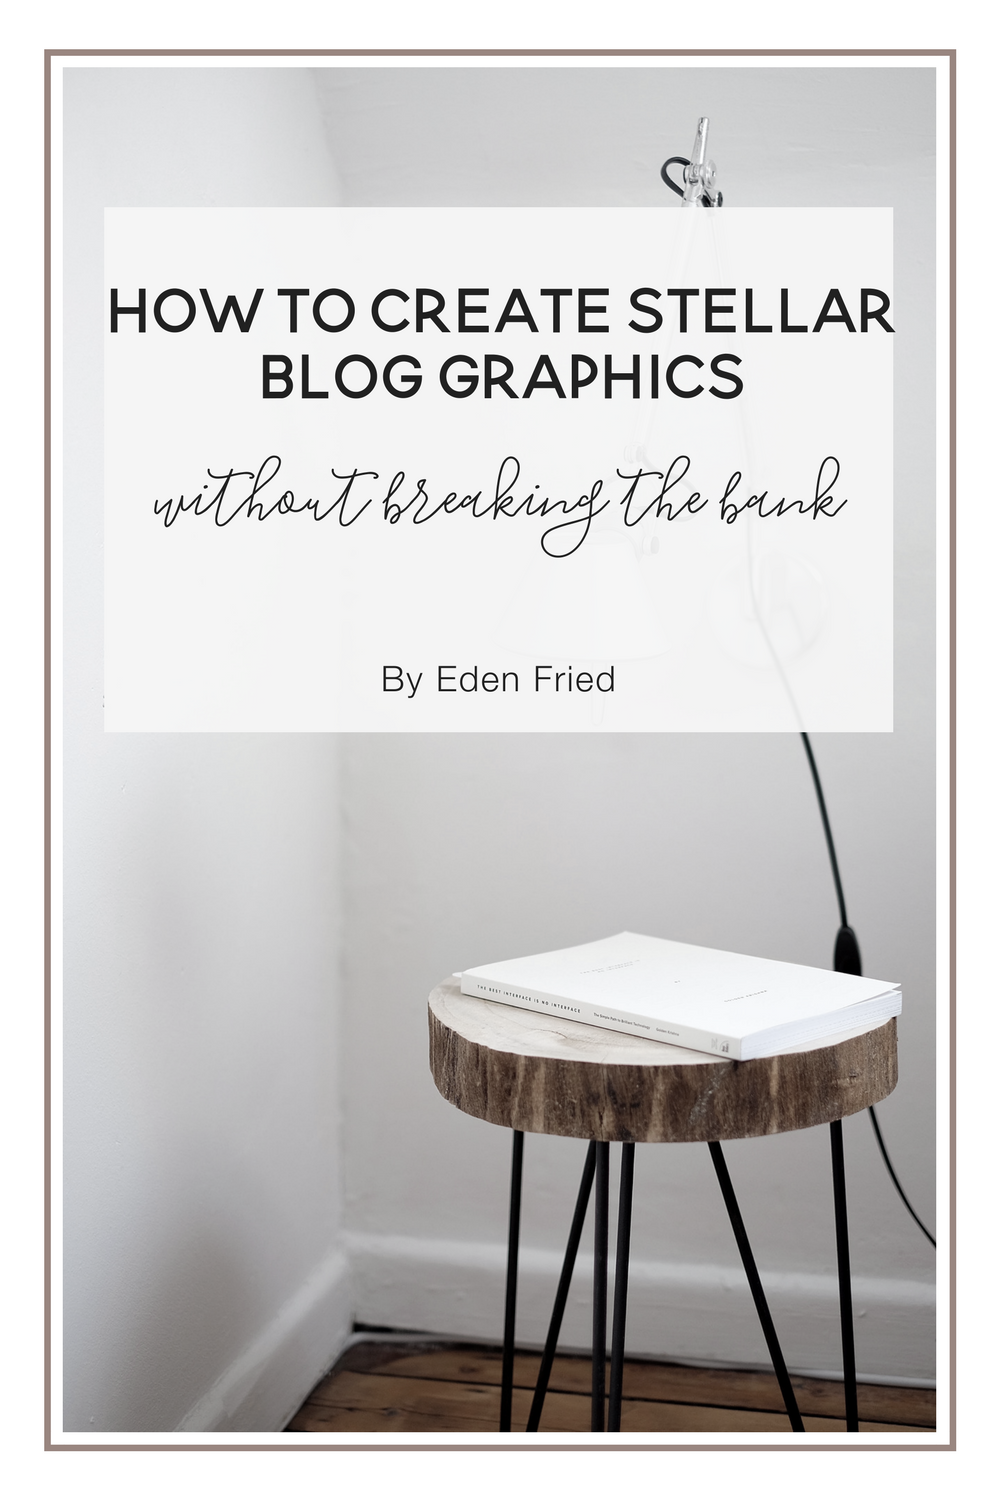 Struggling to create images? Want to know how to create stellar blog graphics without breaking the bank?